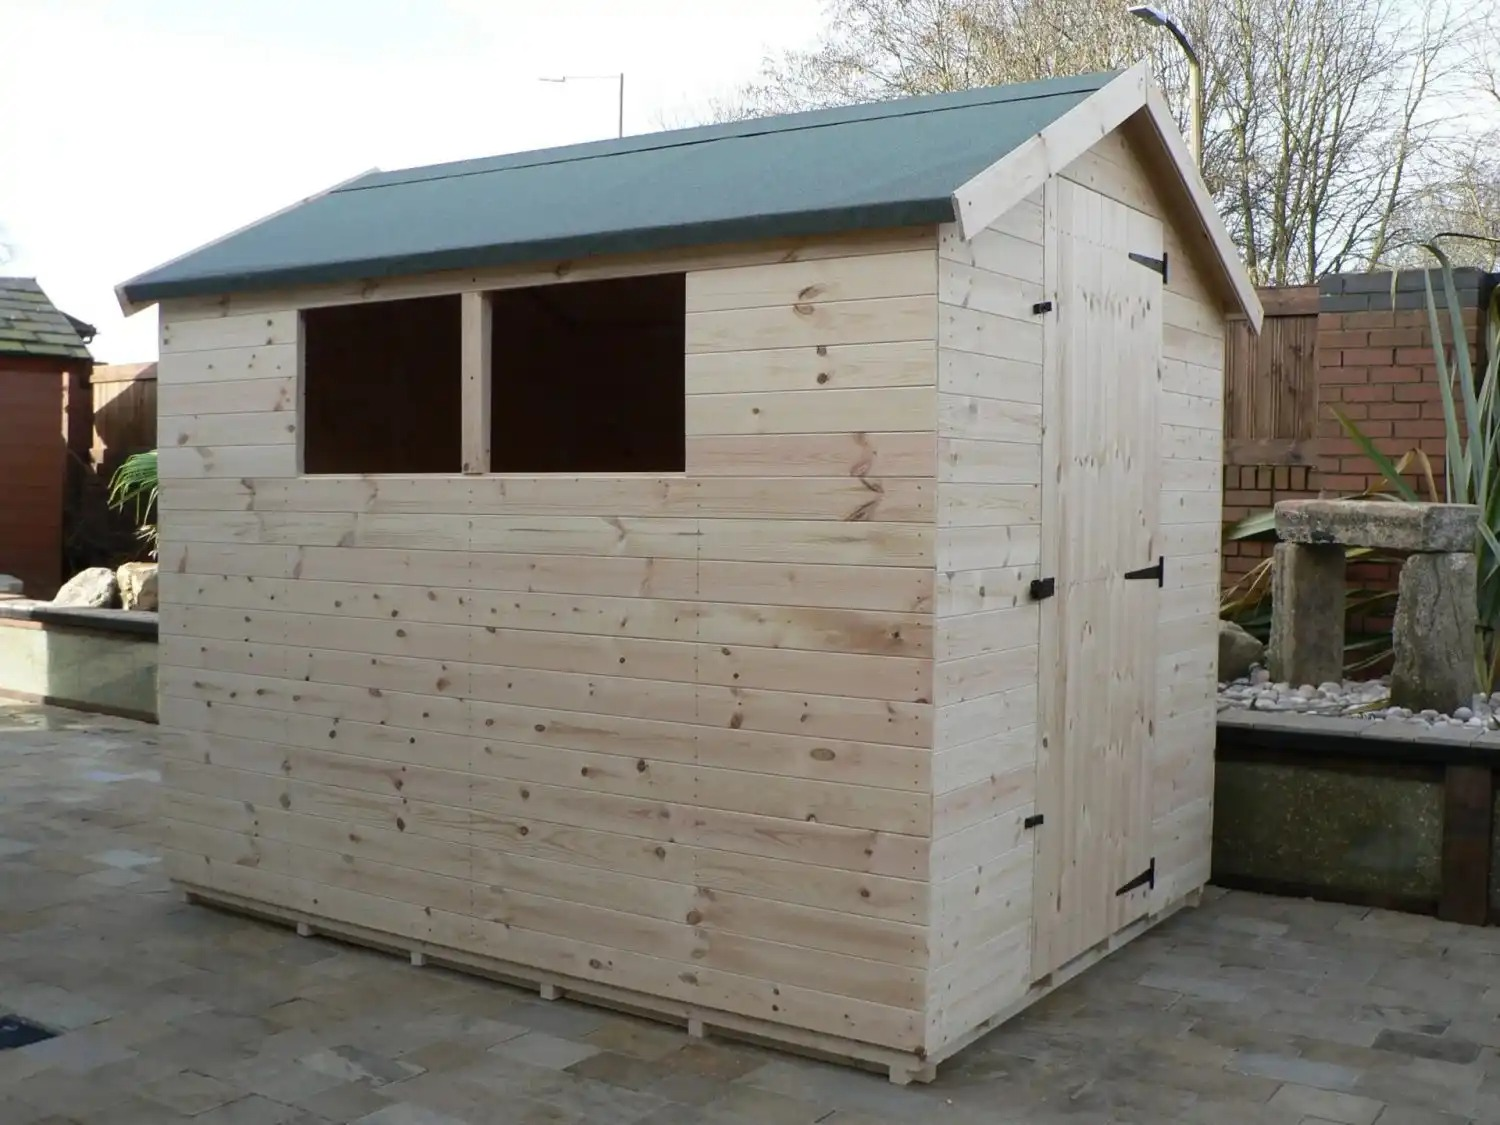 8' X 6' Apex Shed Full Size Windows